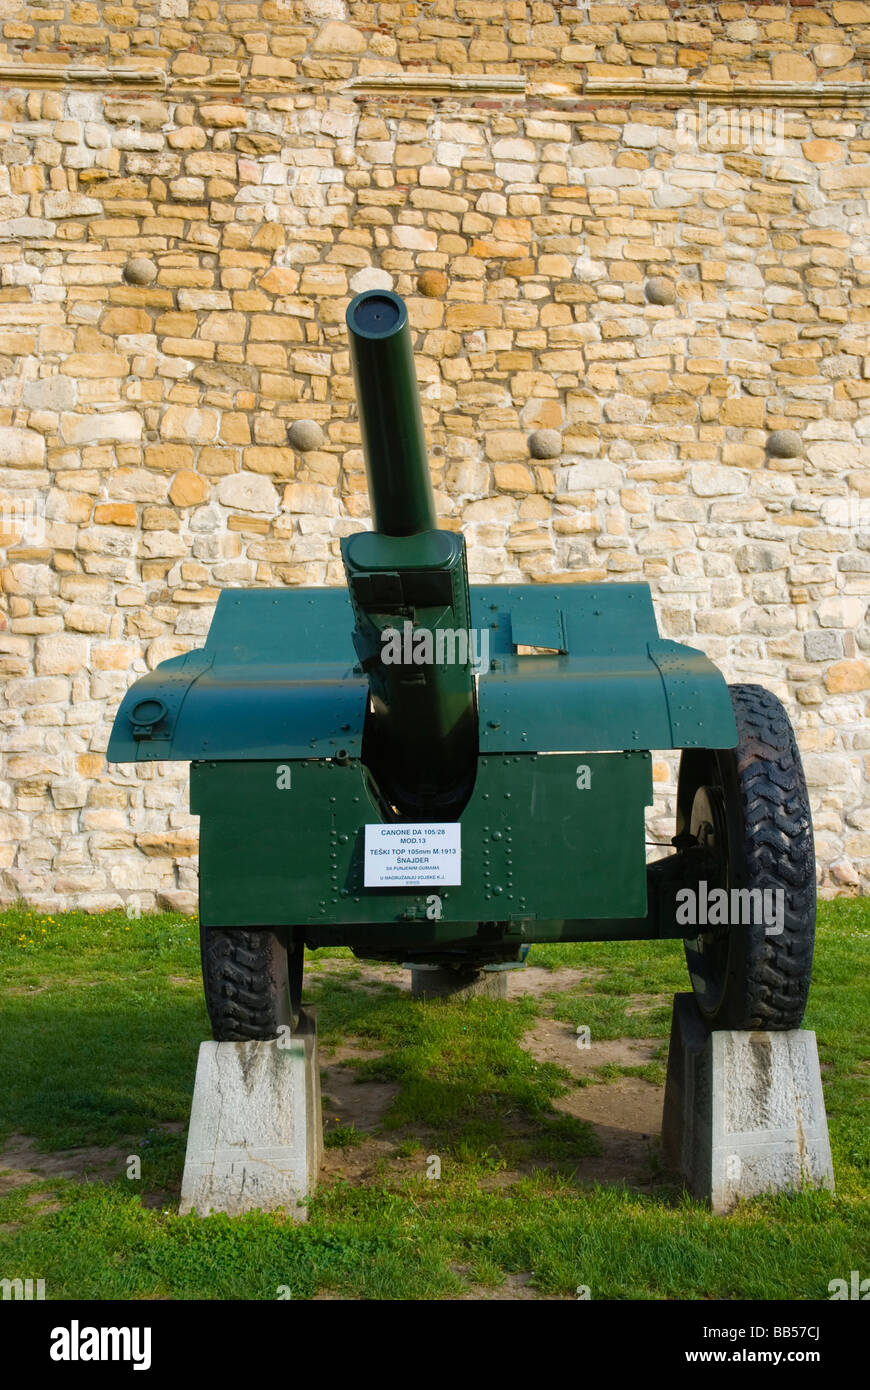 DA 105 28 mod 13 canon outside military museum at Kalemegdan park in Belgrade Serbia Europe - Stock Image